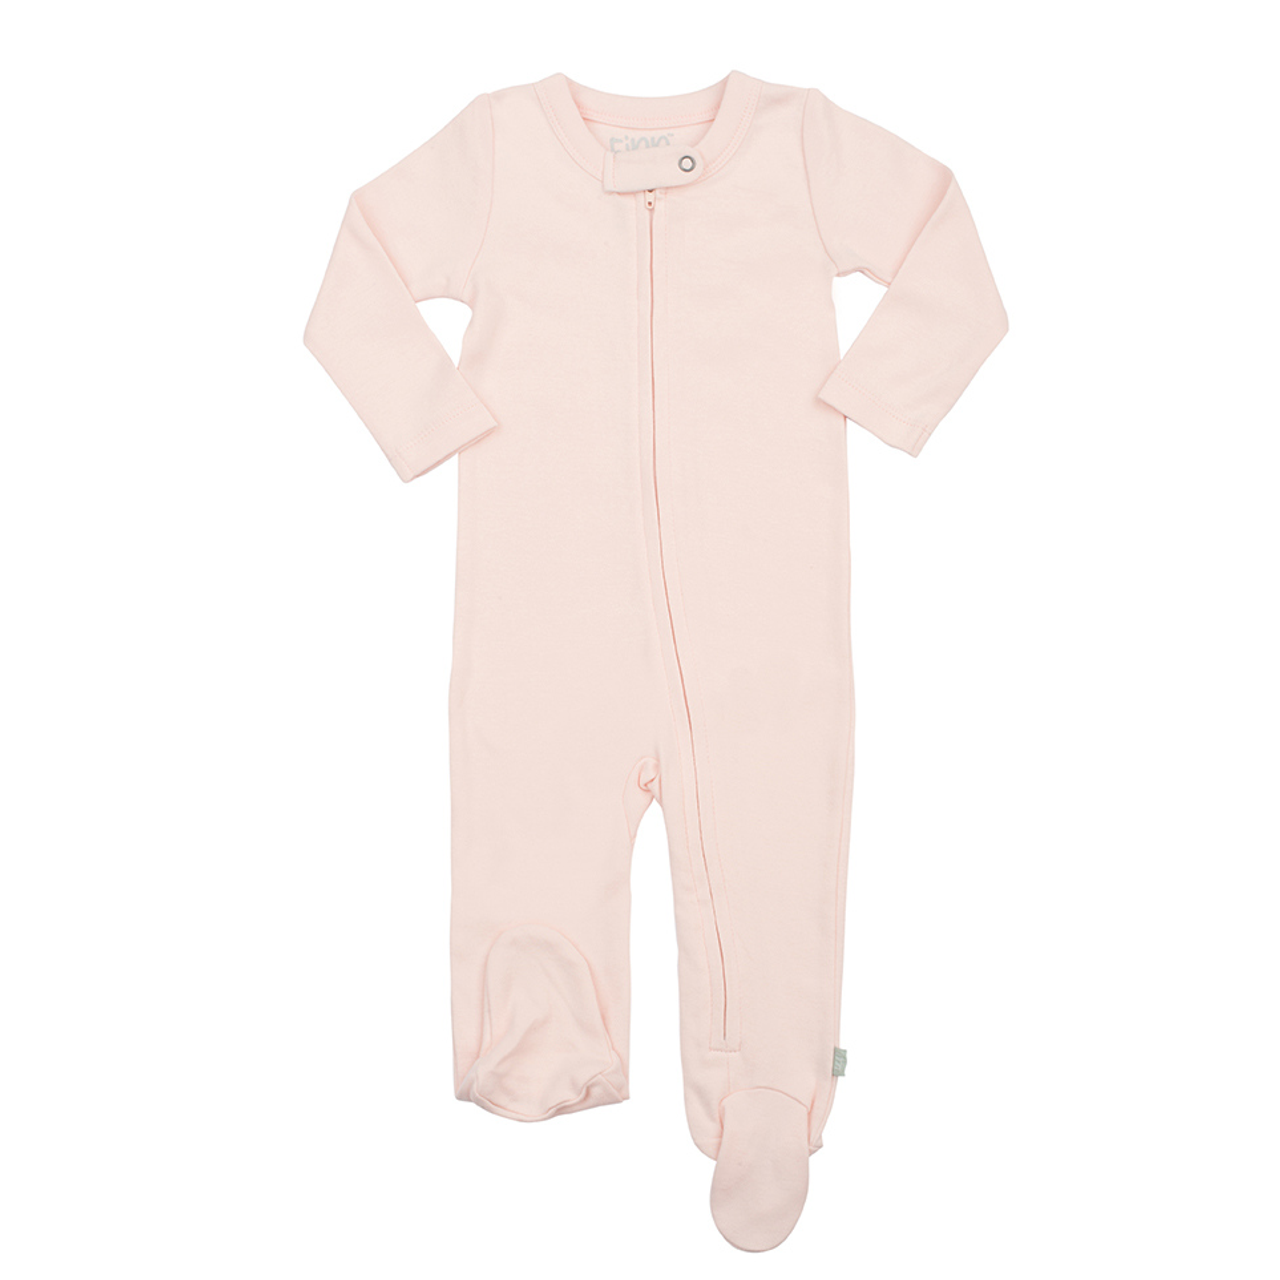 6887a214e2a9 Organic Cotton Zip Footed Romper